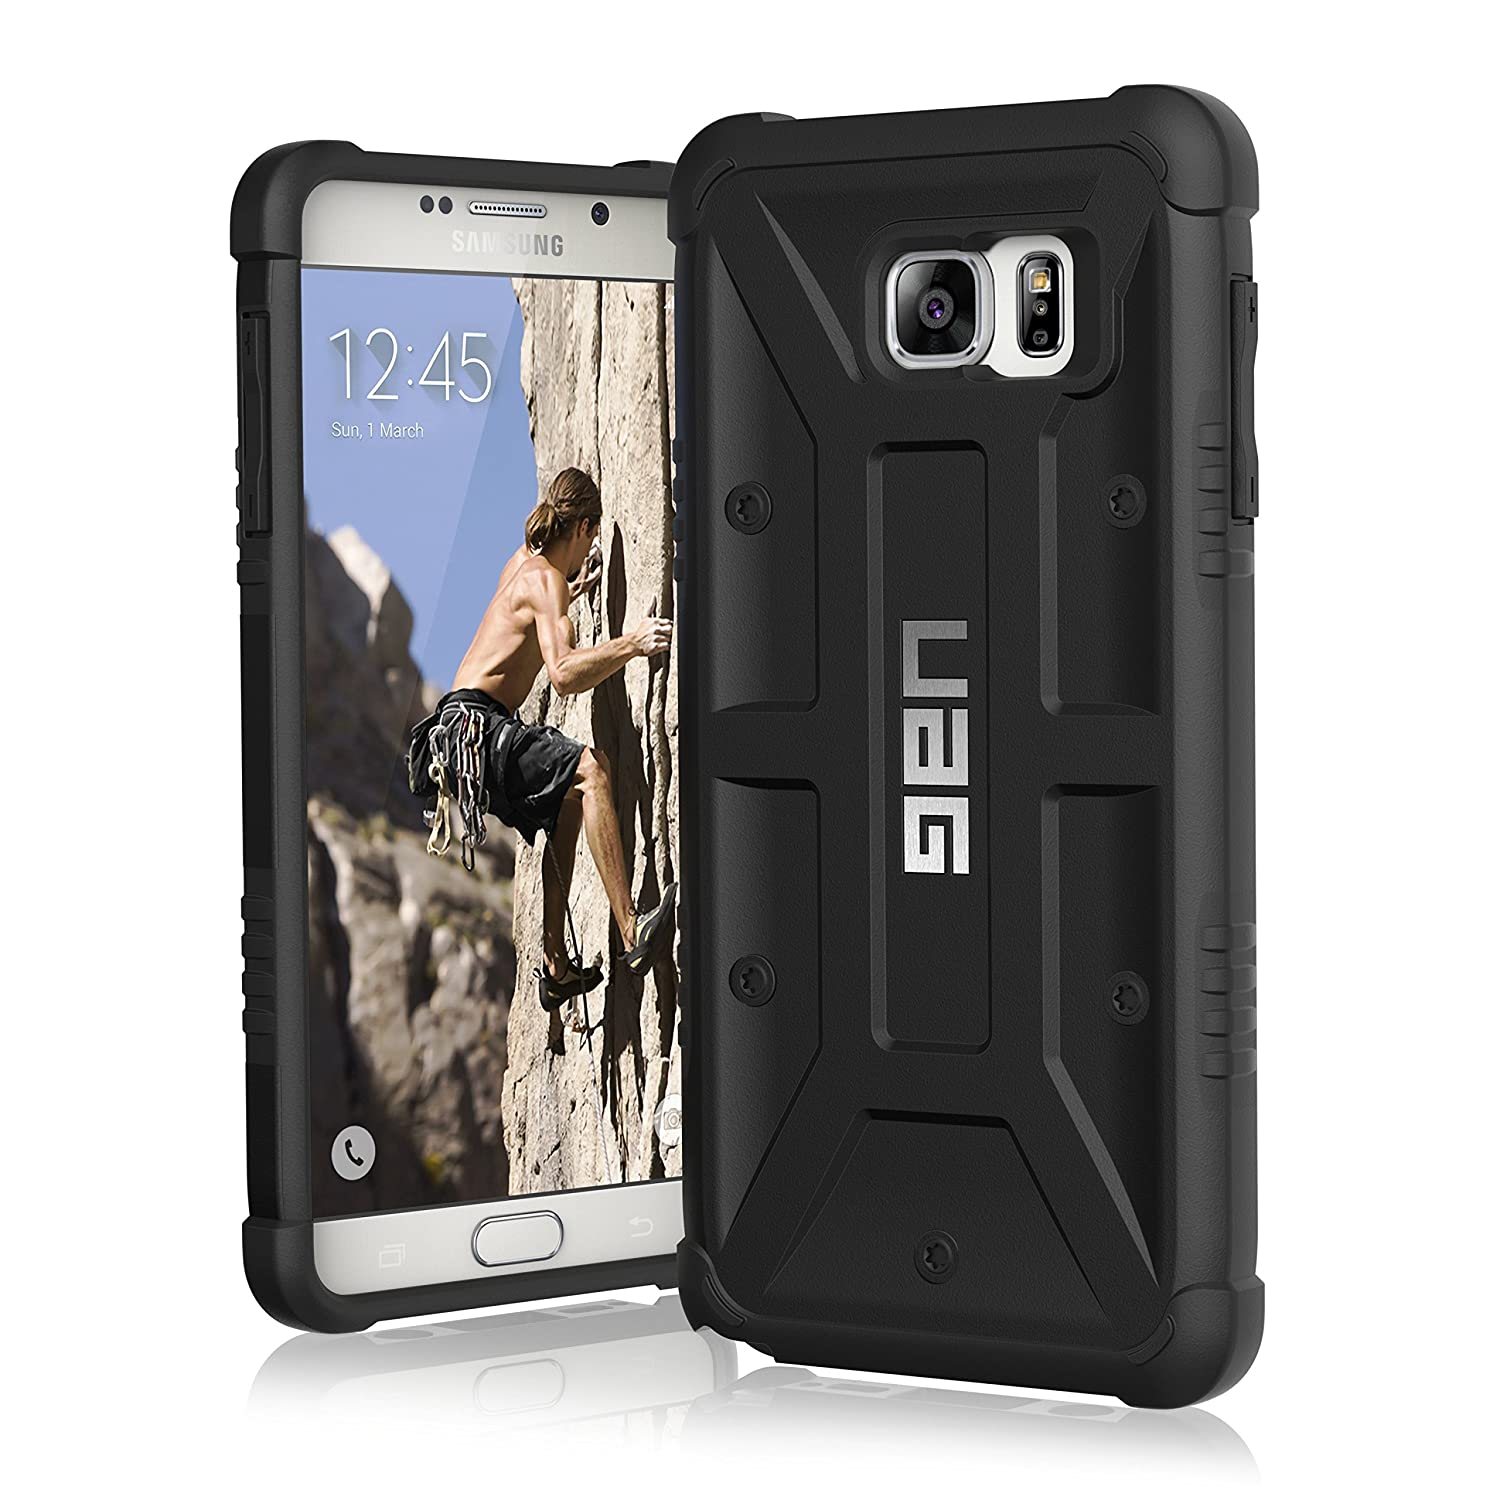 Galaxy s6 cases shop samsung cases online uag urban armor gear - Amazon Com Uag Samsung Galaxy Note 5 Feather Light Composite Black Military Drop Tested Phone Case Cell Phones Accessories